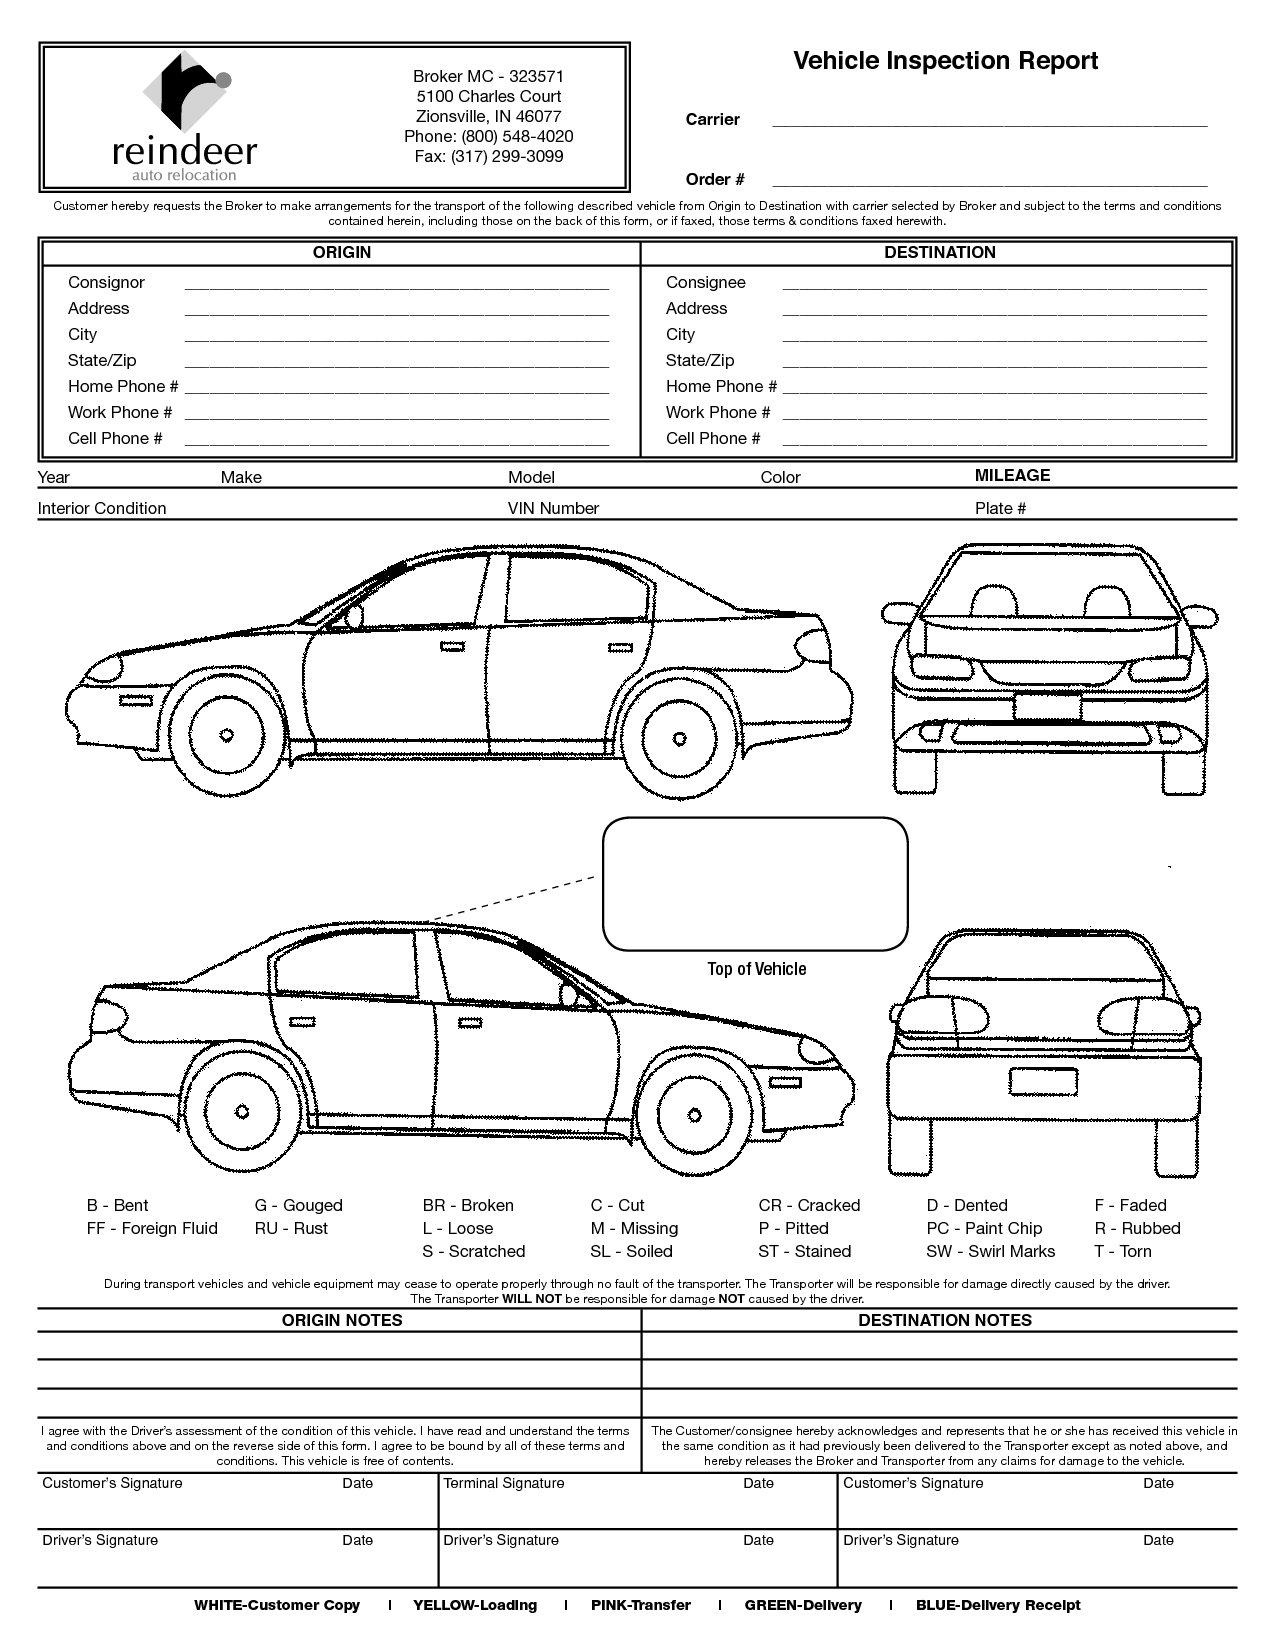 Vehicle Inspection Form Template | Rota Template - Free Printable Car Template